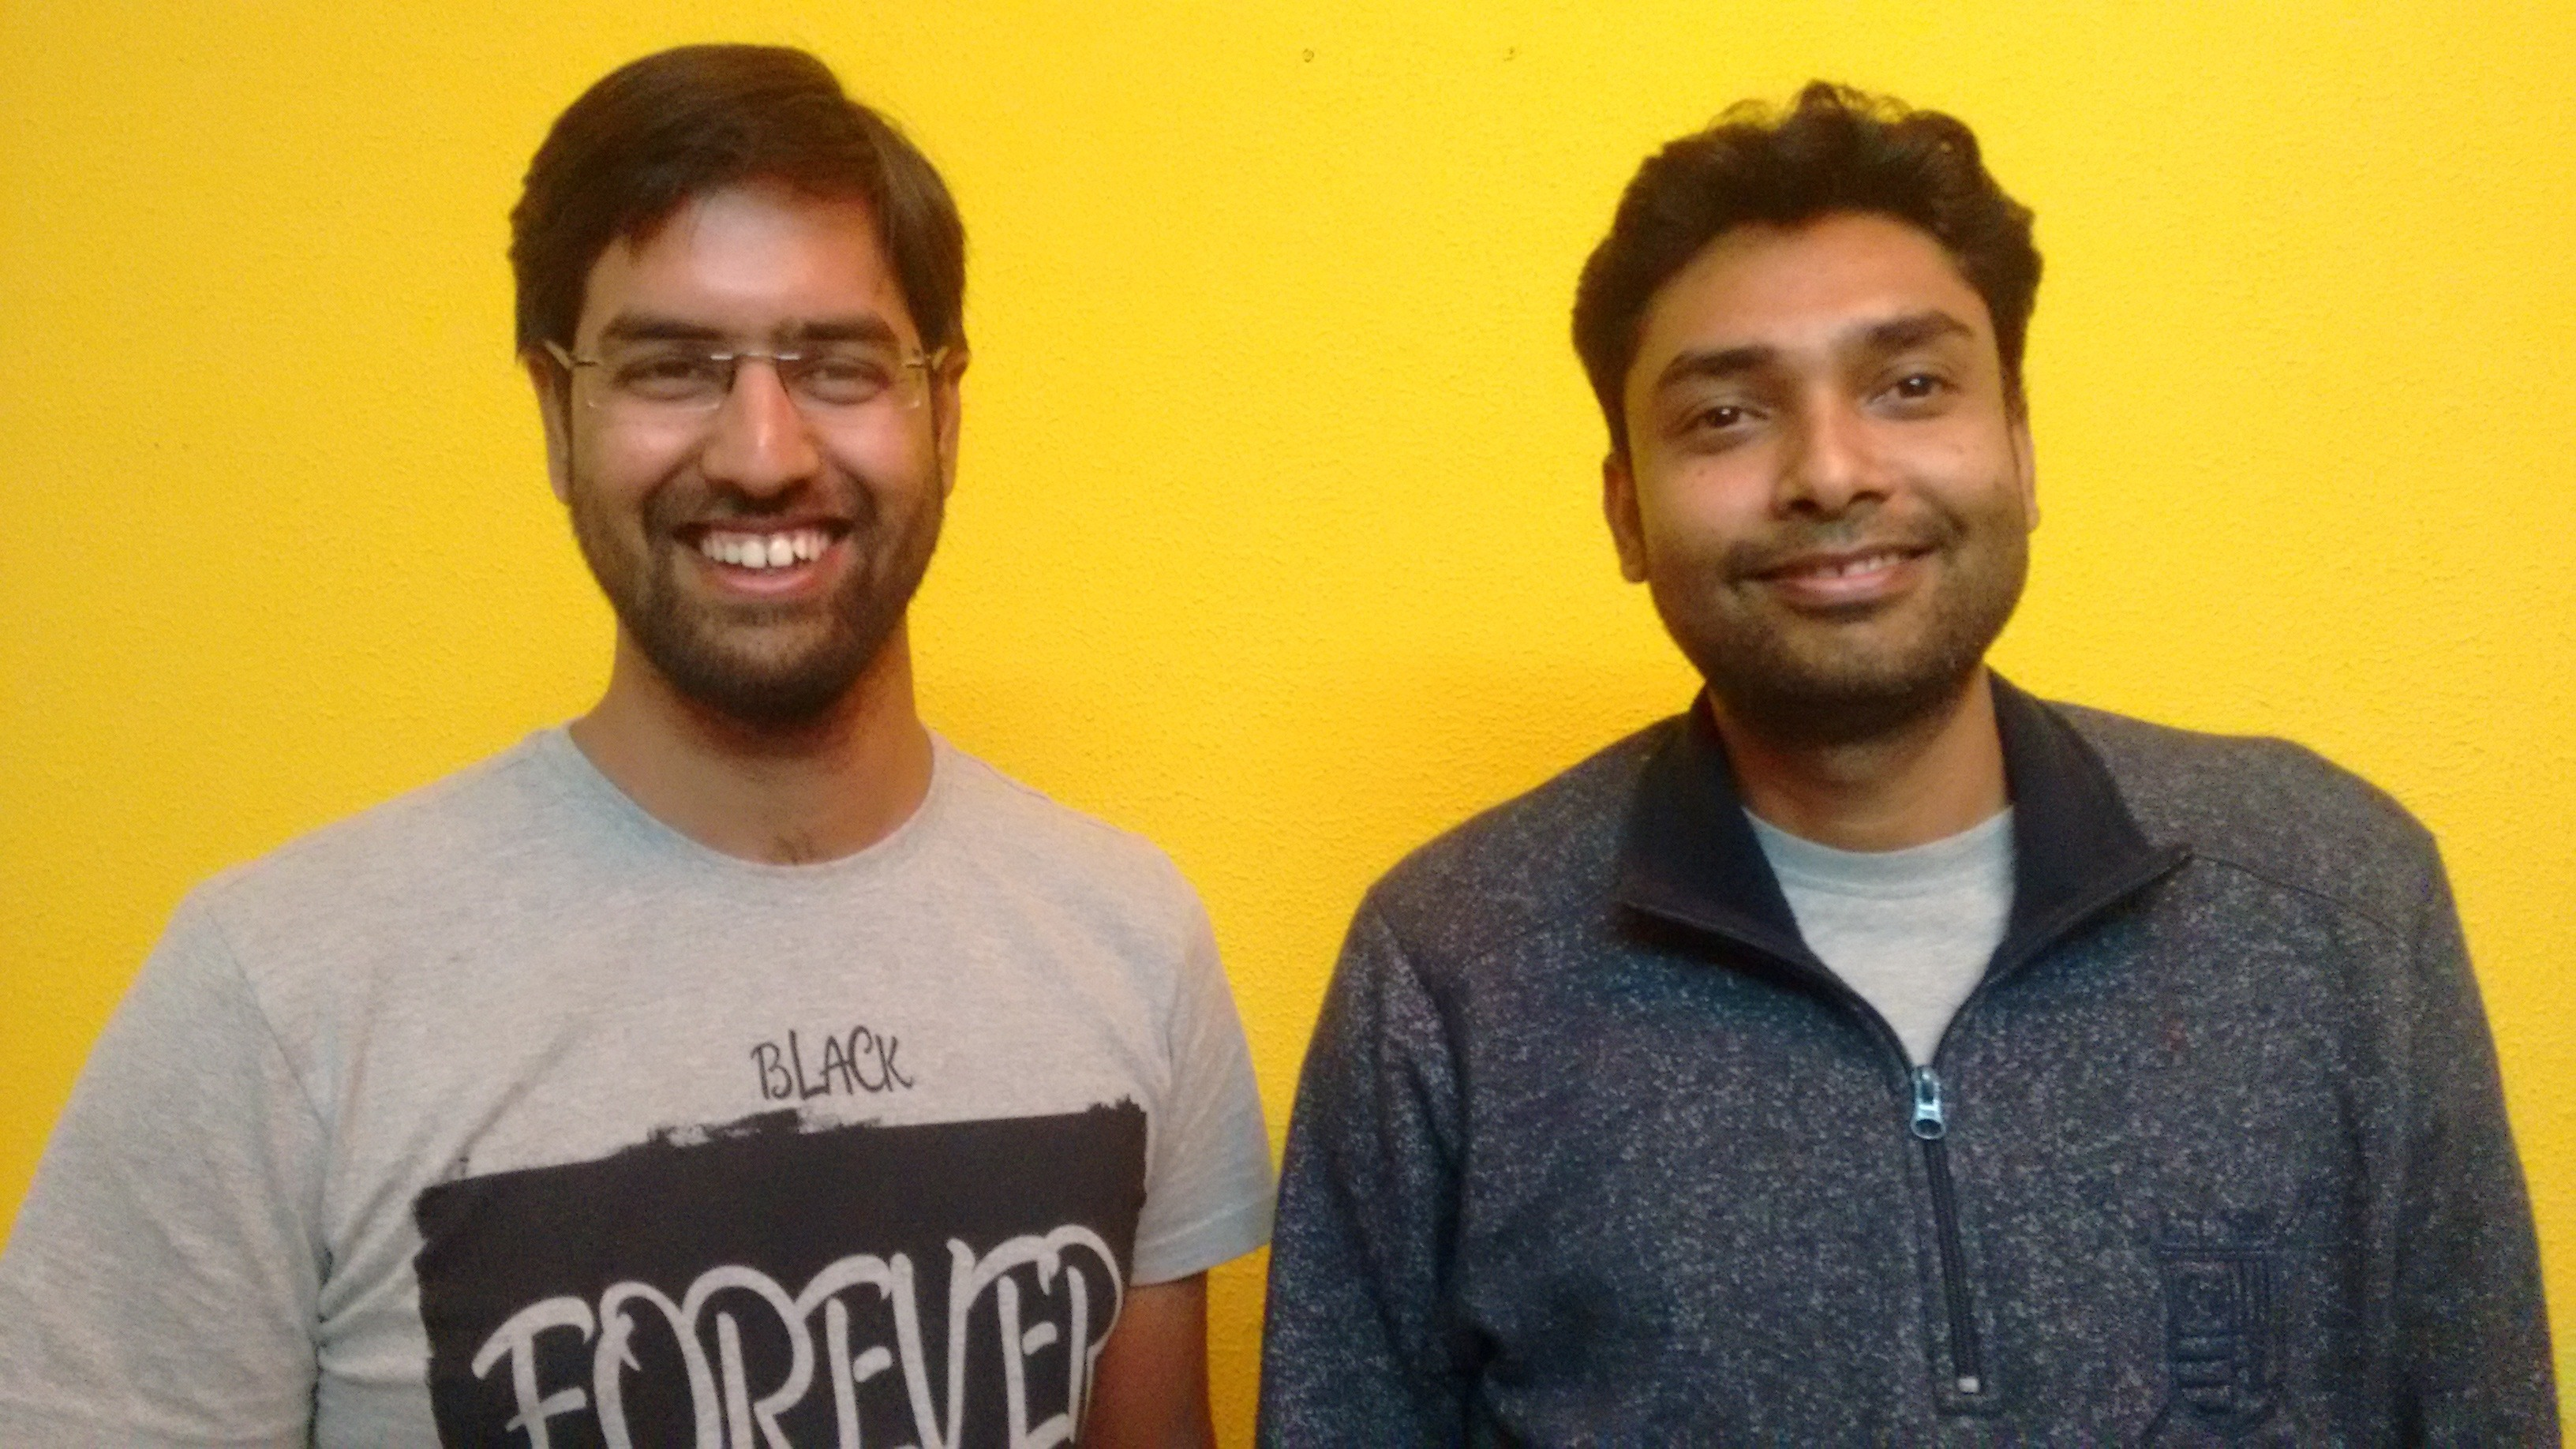 Turn any app into Whatsapp with the SaaS toolkit these guys built